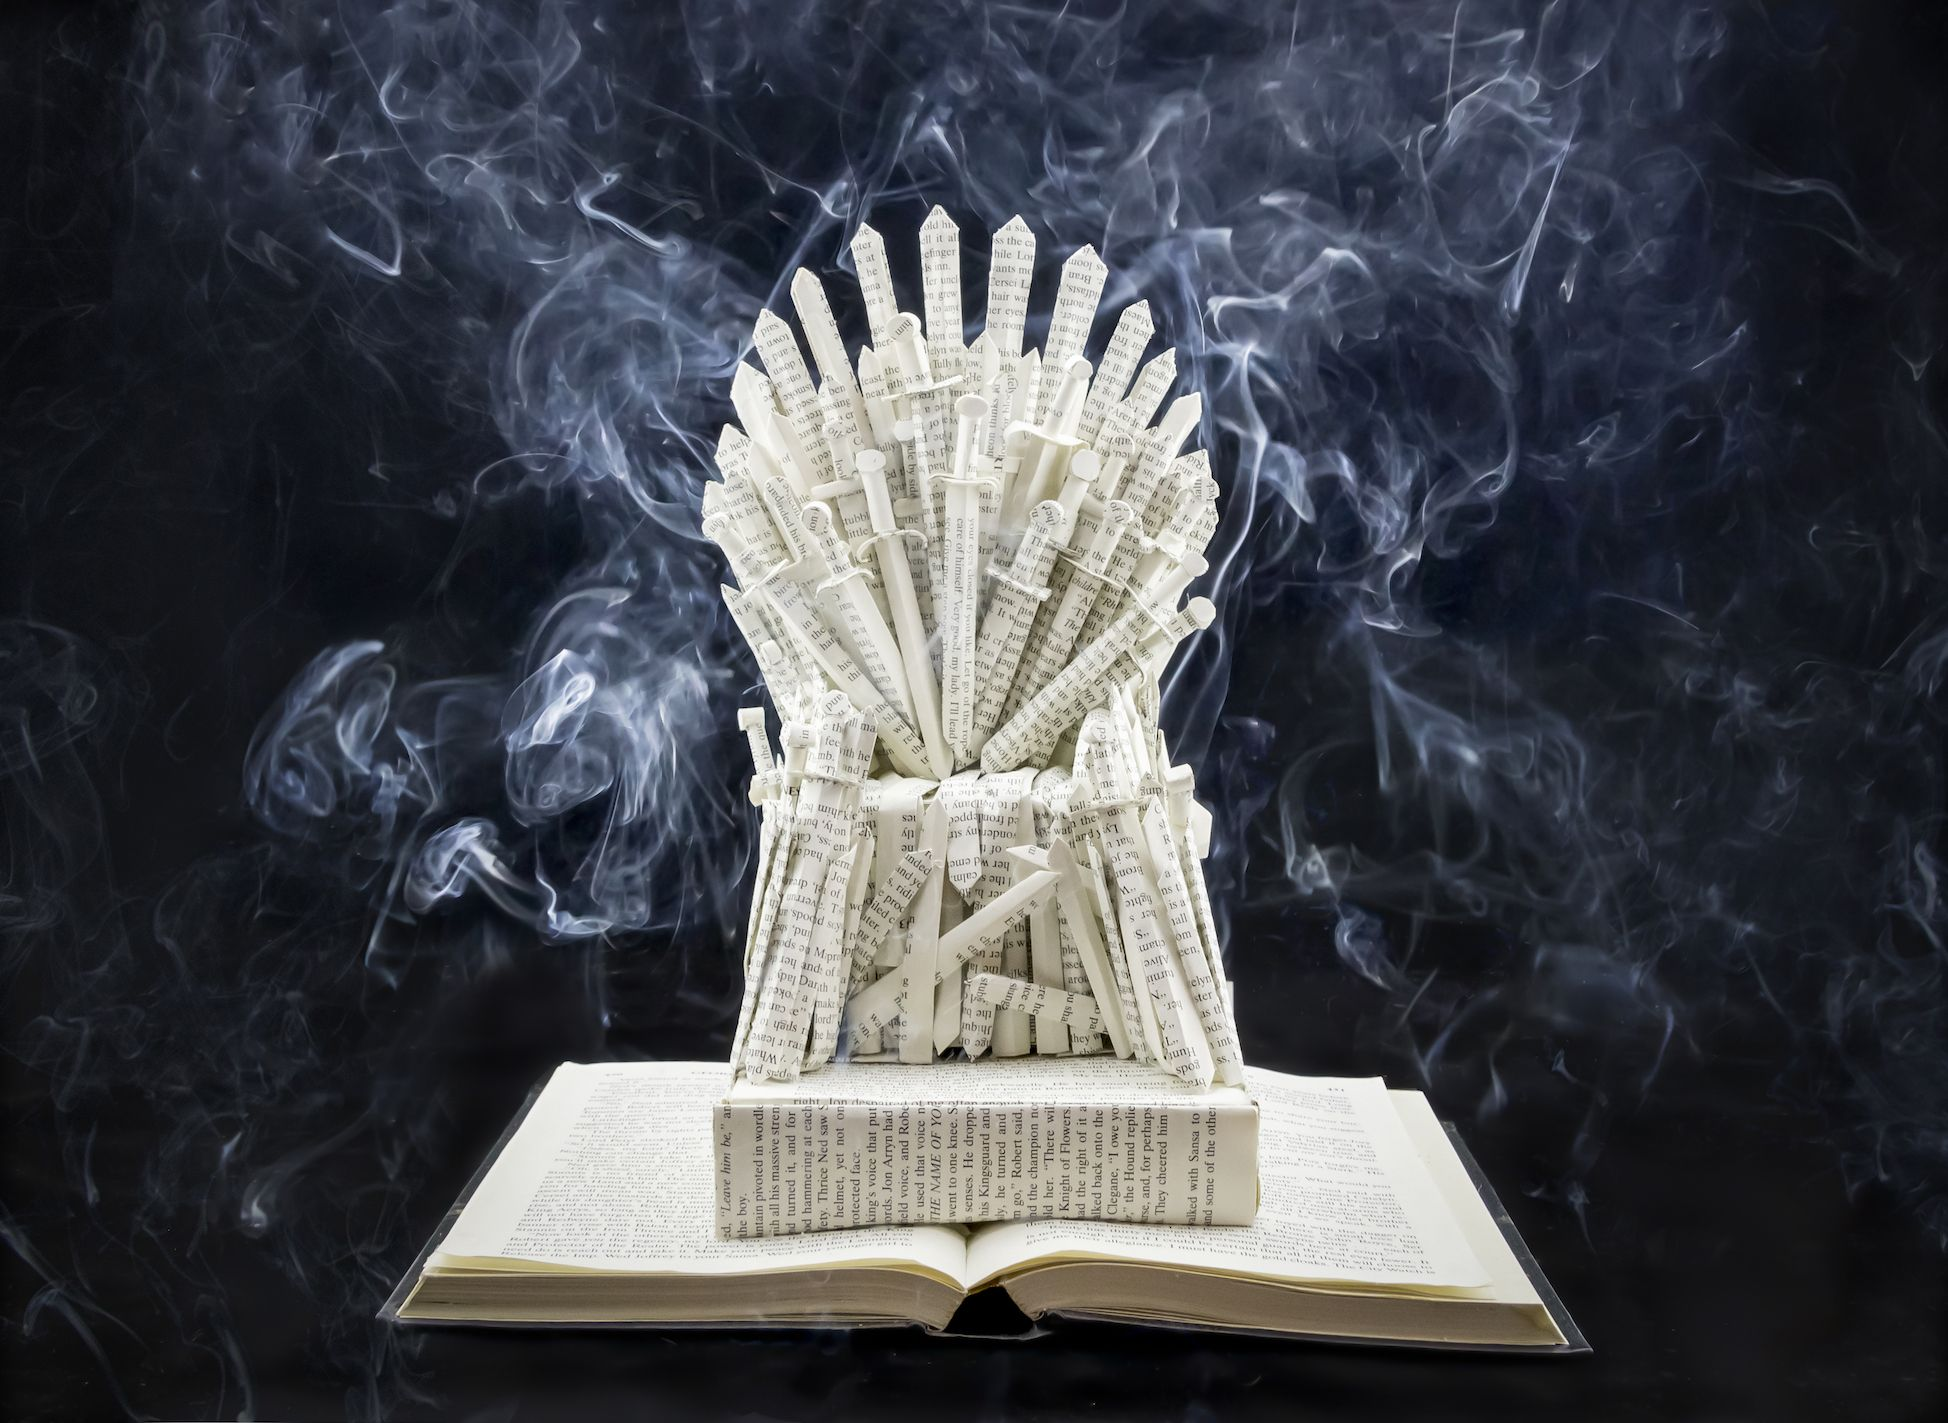 001 Game of Thrones The Iron Throne Book Sculpture by Jamie